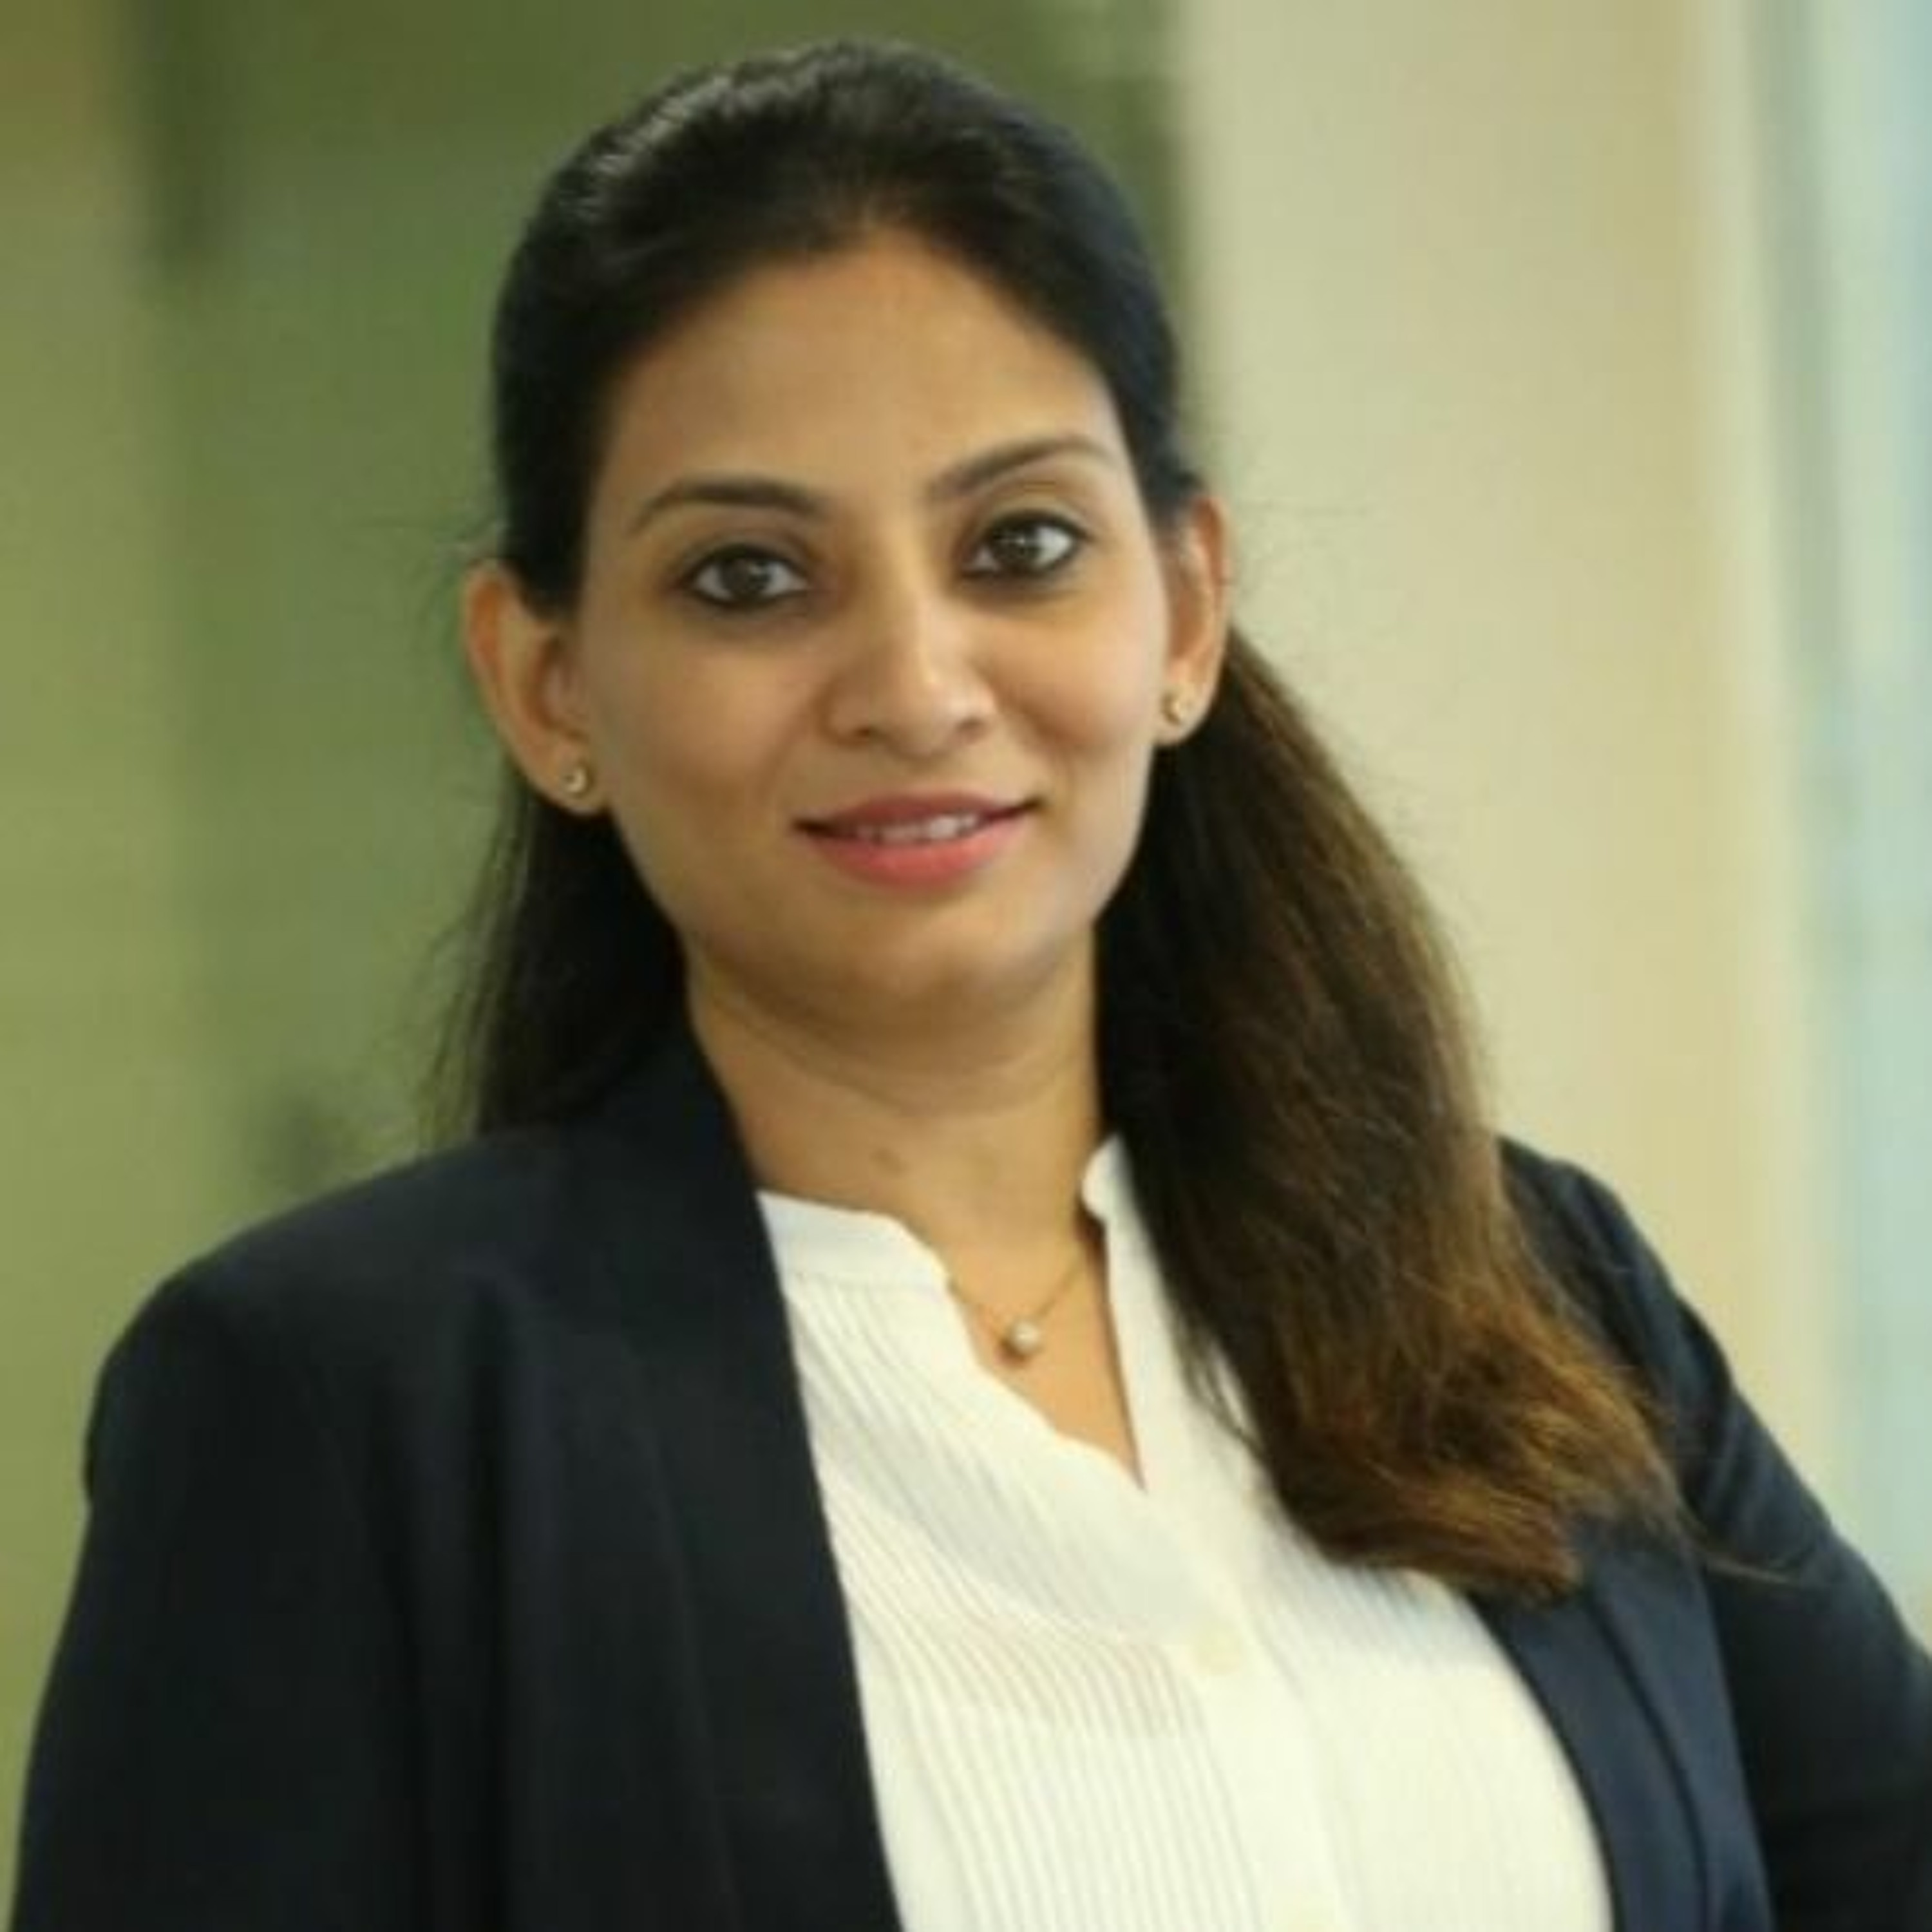 Sushma Kaushik on the Exit thesis of Aavishkaar Capital & investing in socially responsible startups